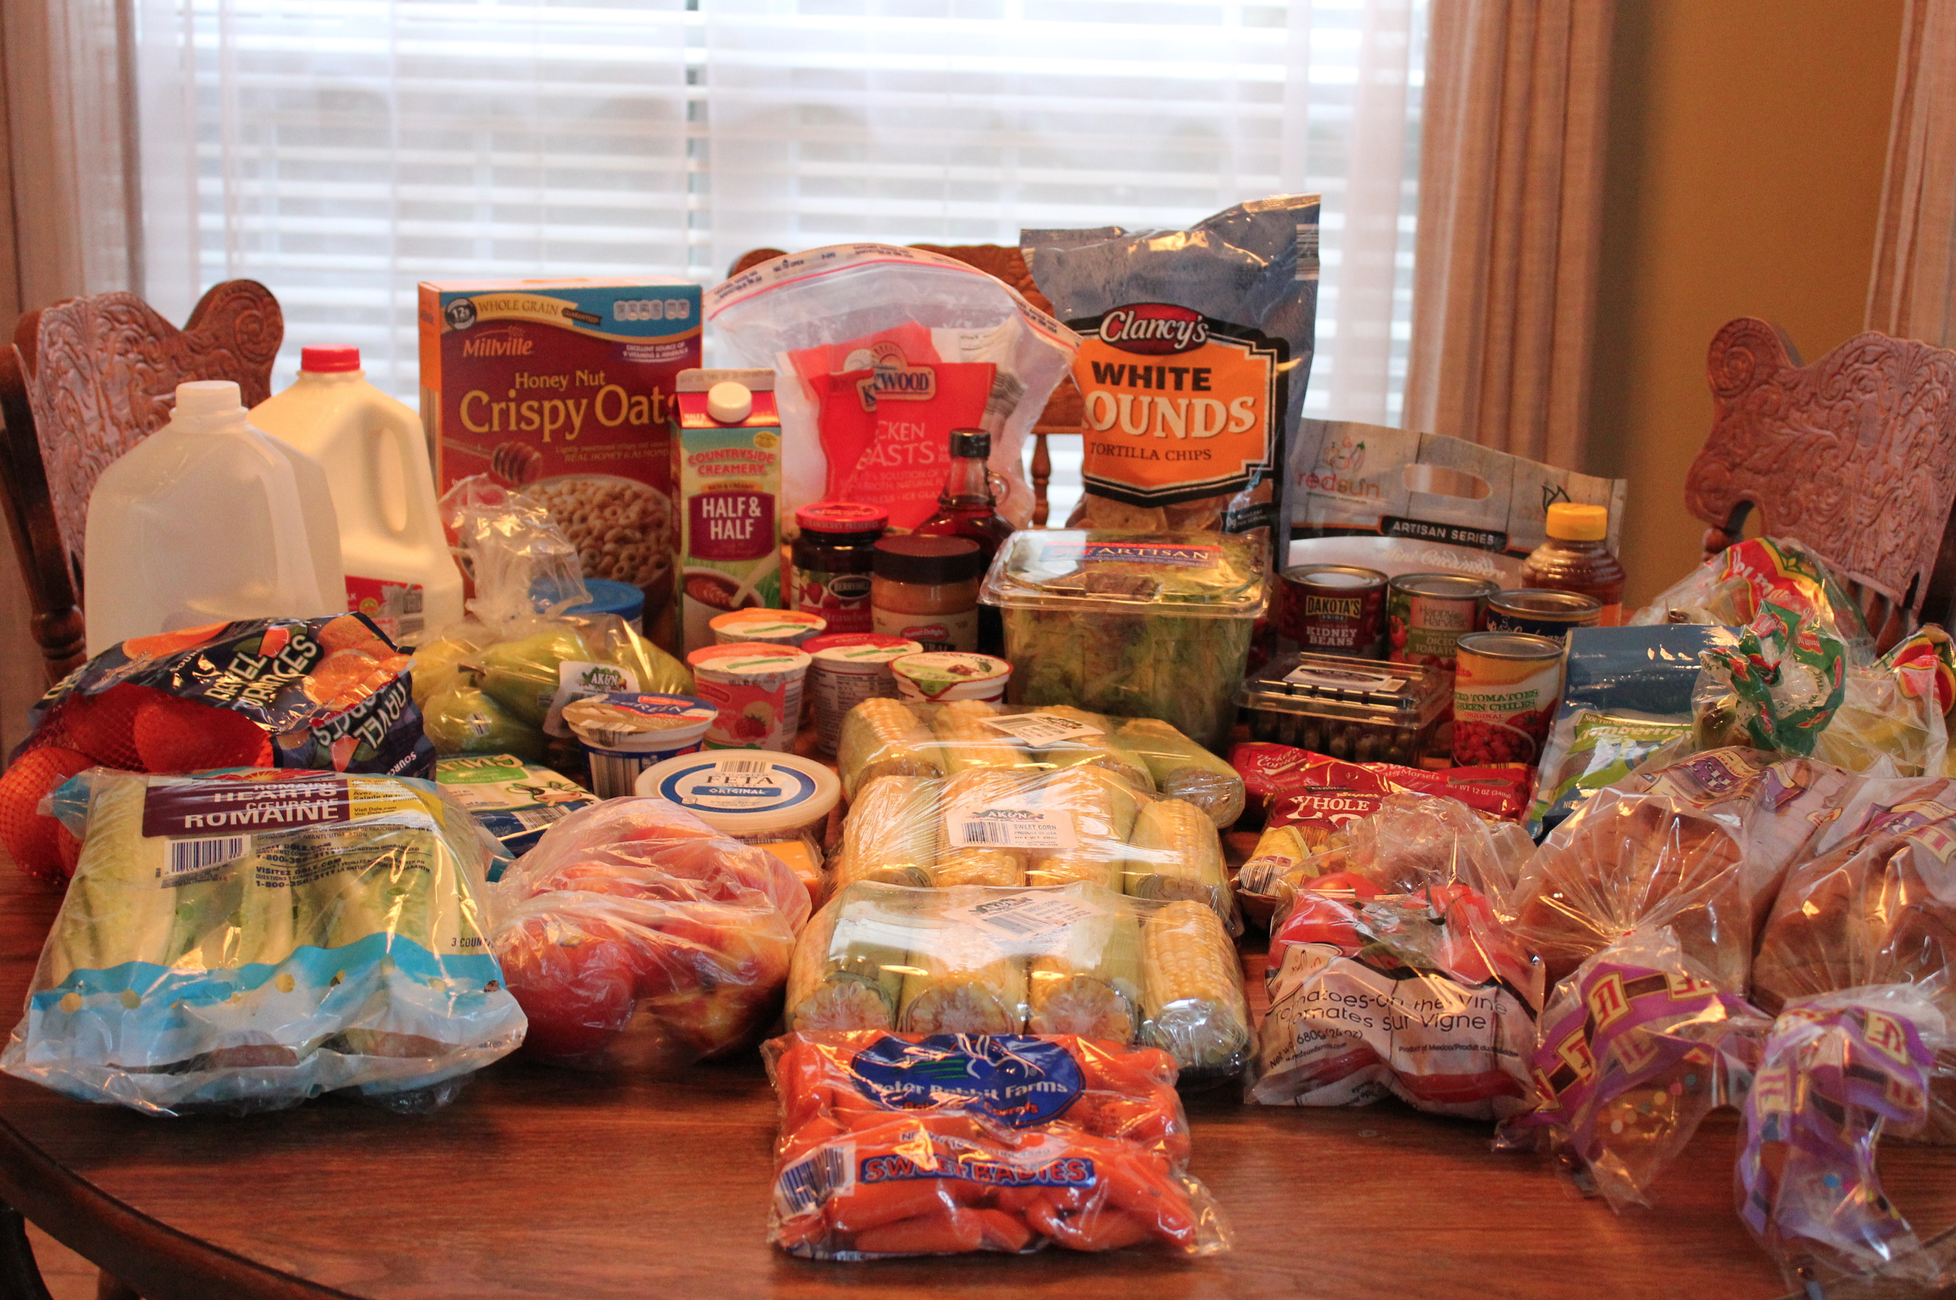 This Week's $100 Grocery Shopping Trip